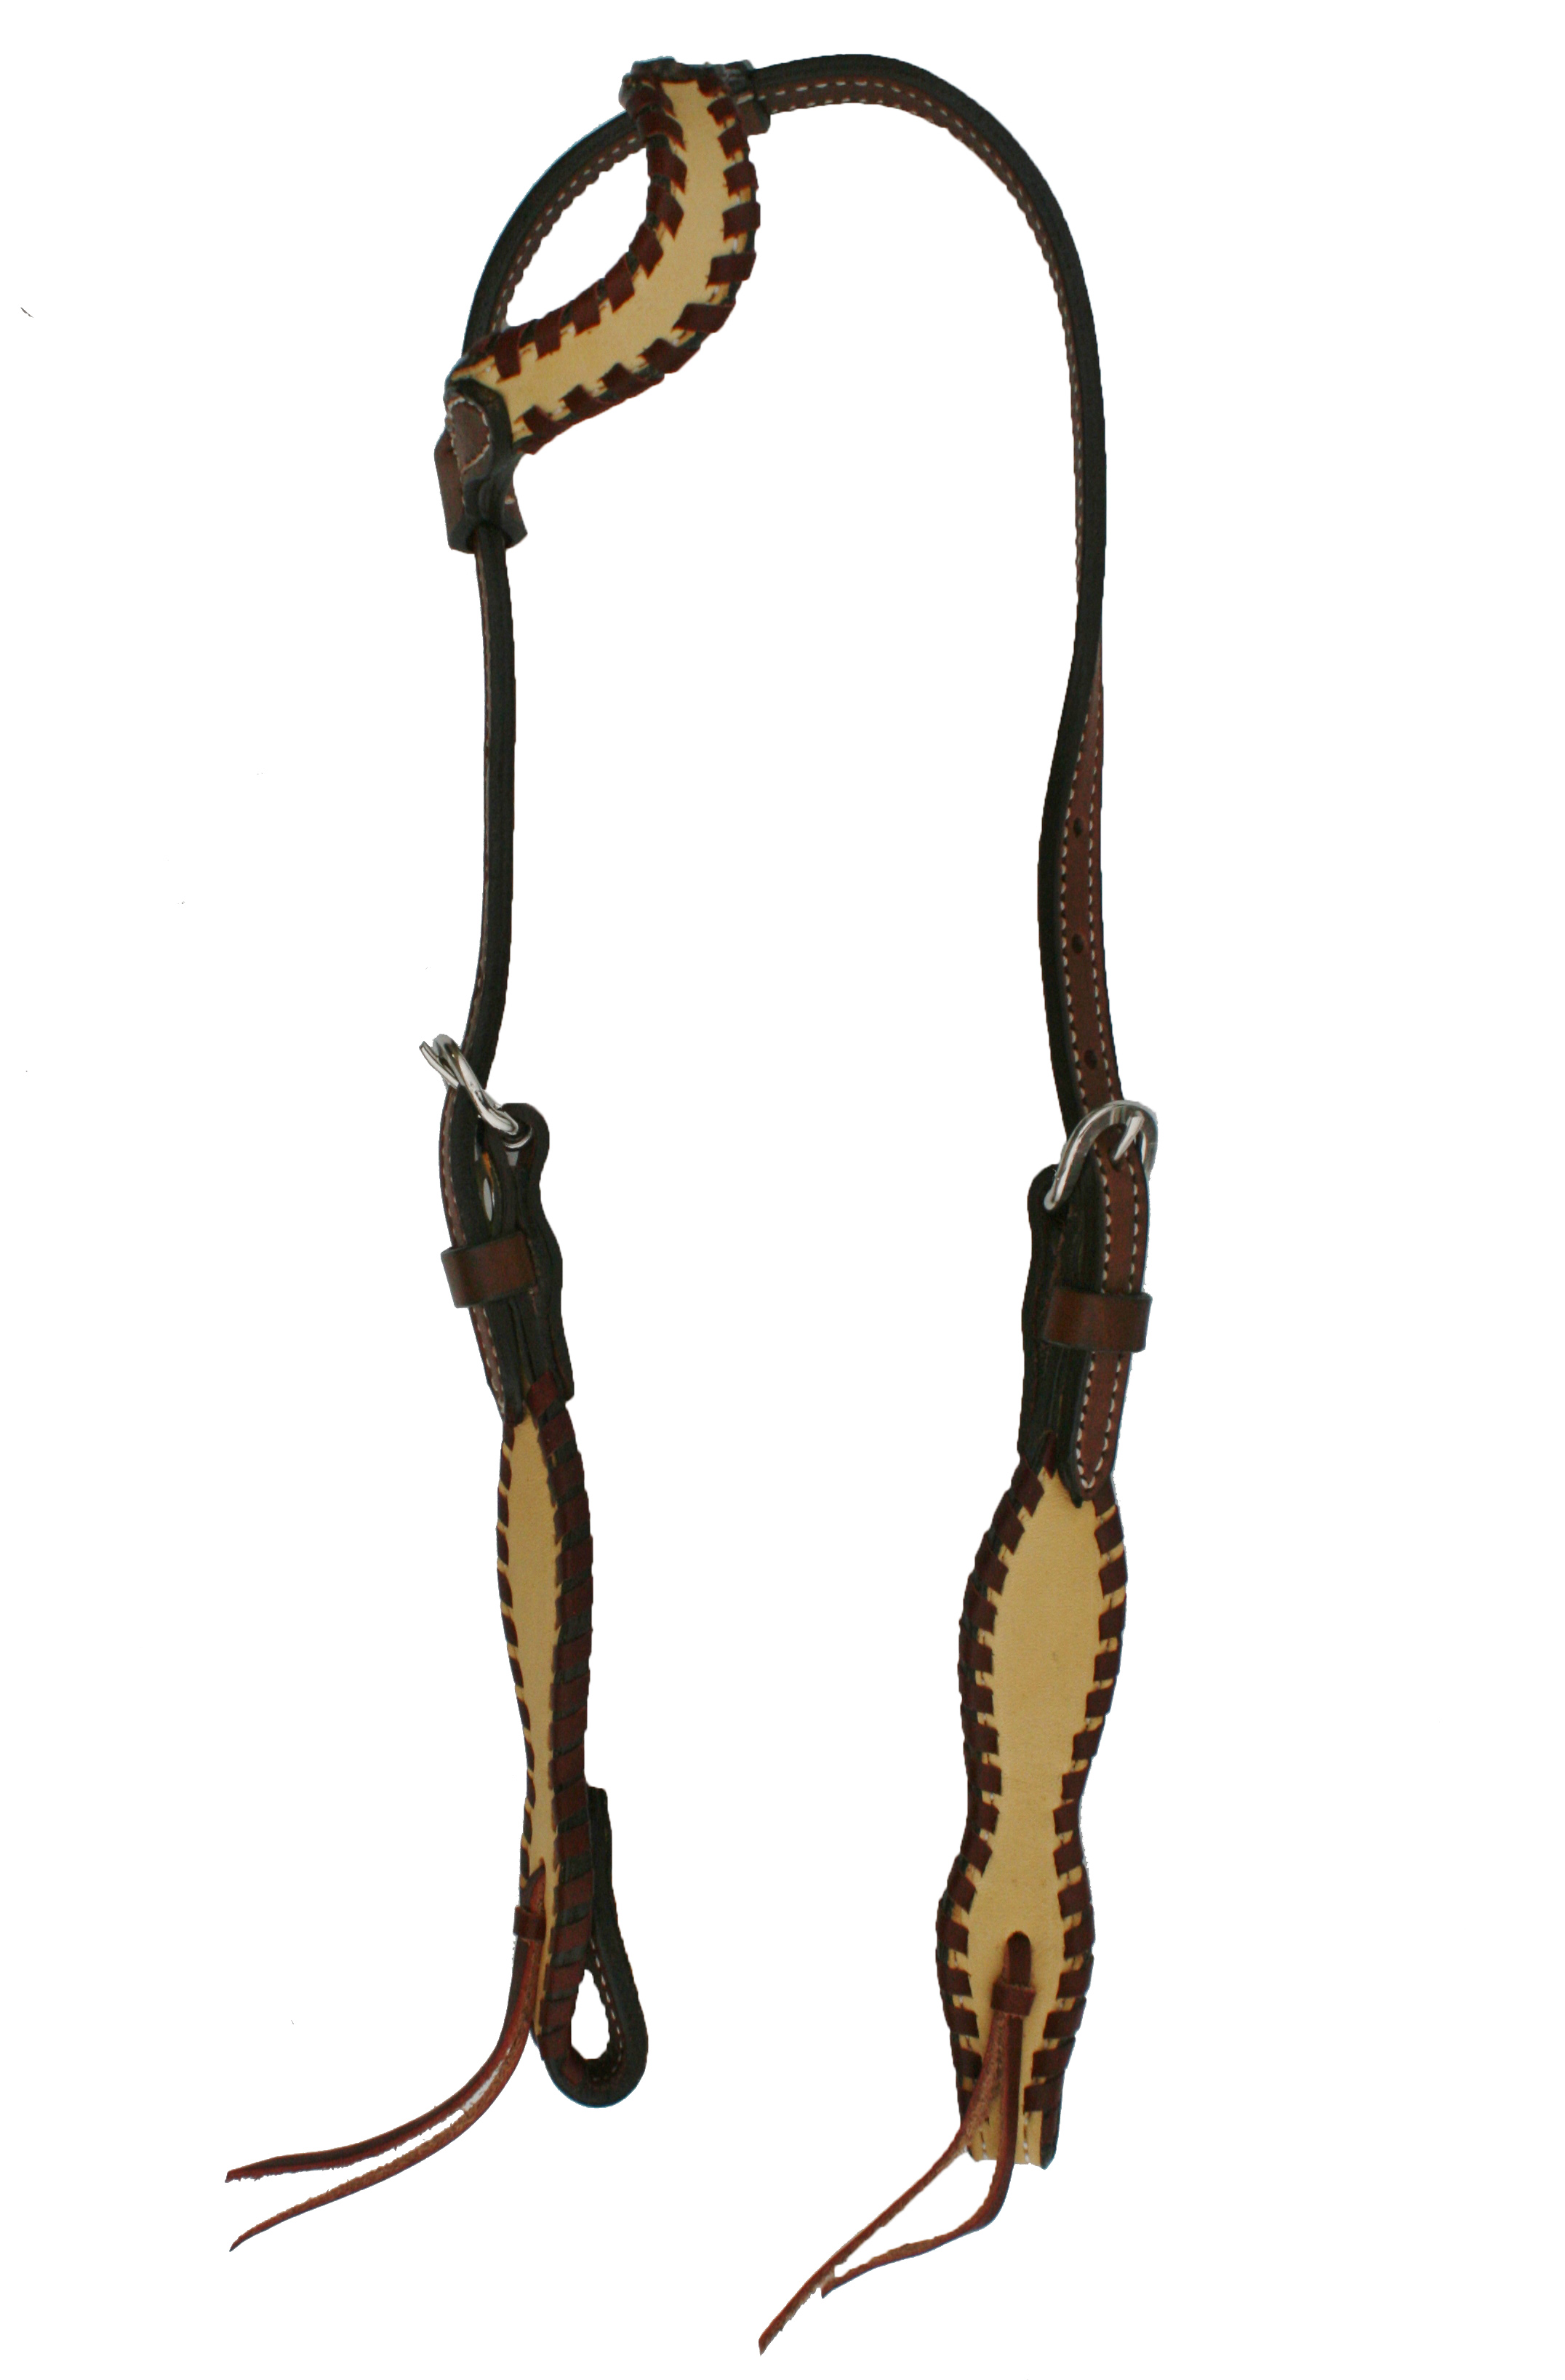 ONE EAR HEADSTALL w PALIMINO OVERLAY